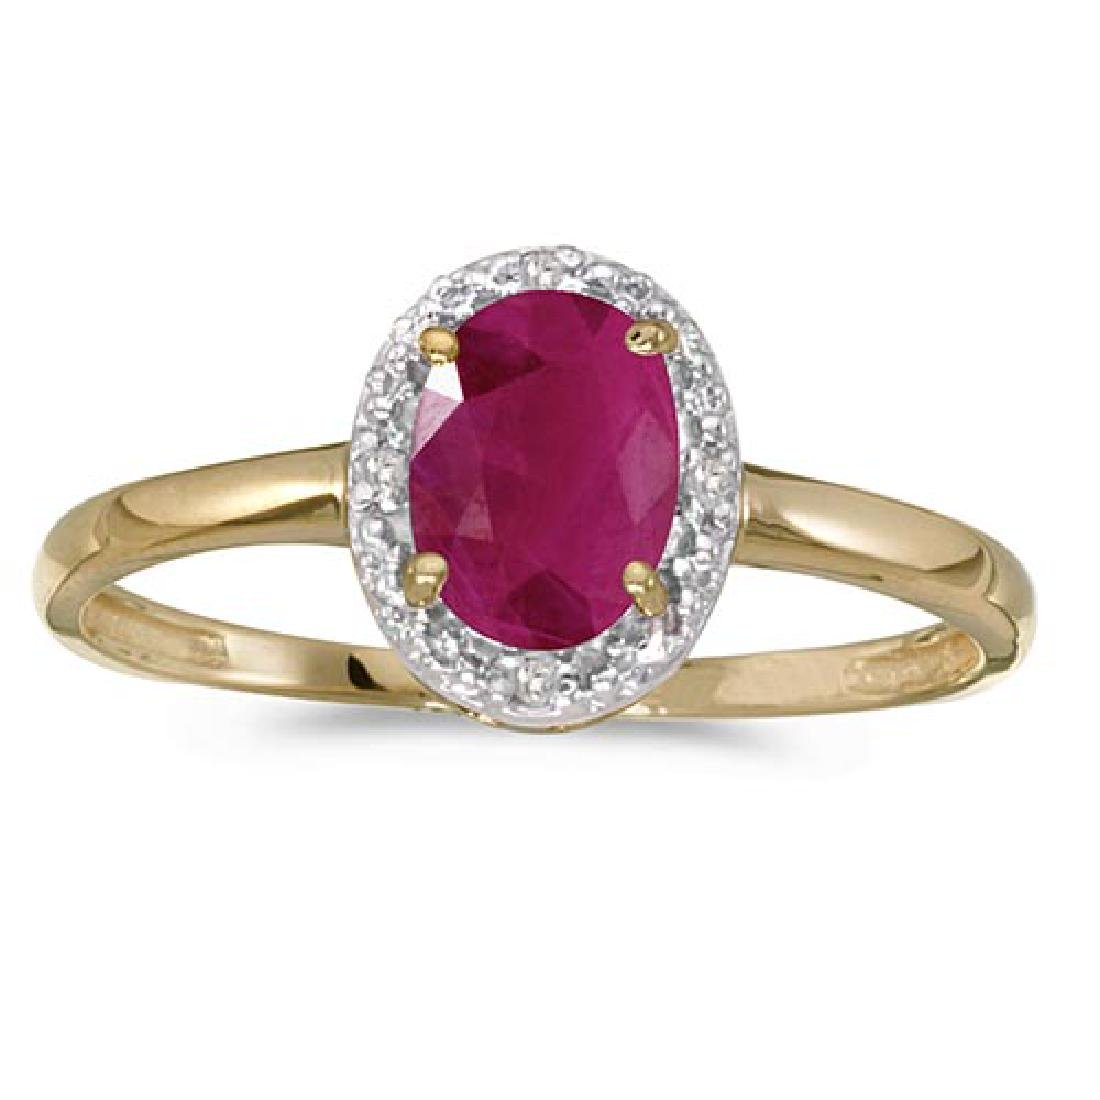 Certified 10k Yellow Gold Oval Ruby And Diamond Ring 0.